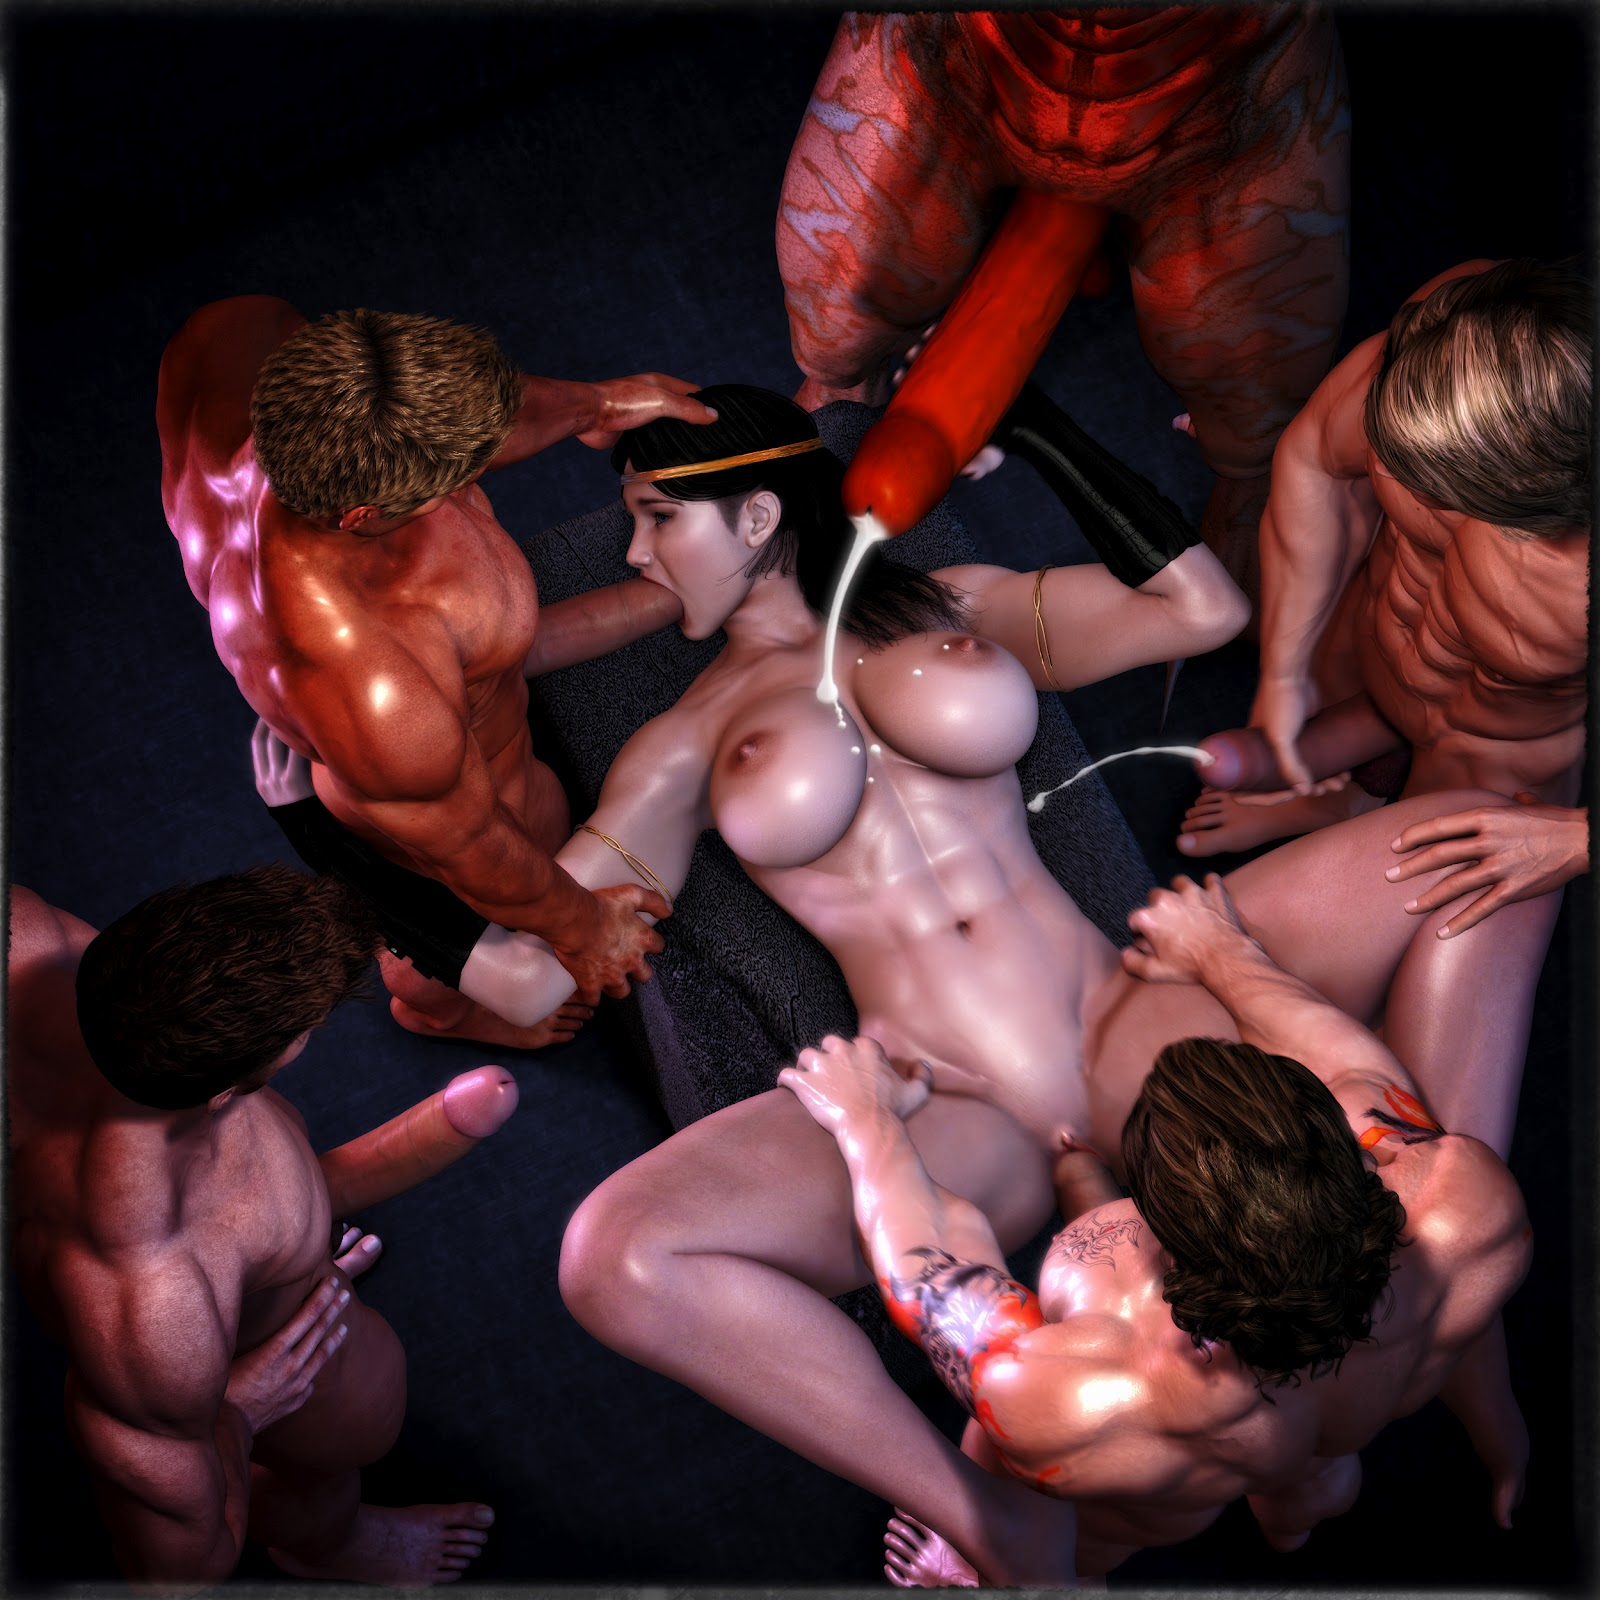 Gang bang 3d porn video xxx toons